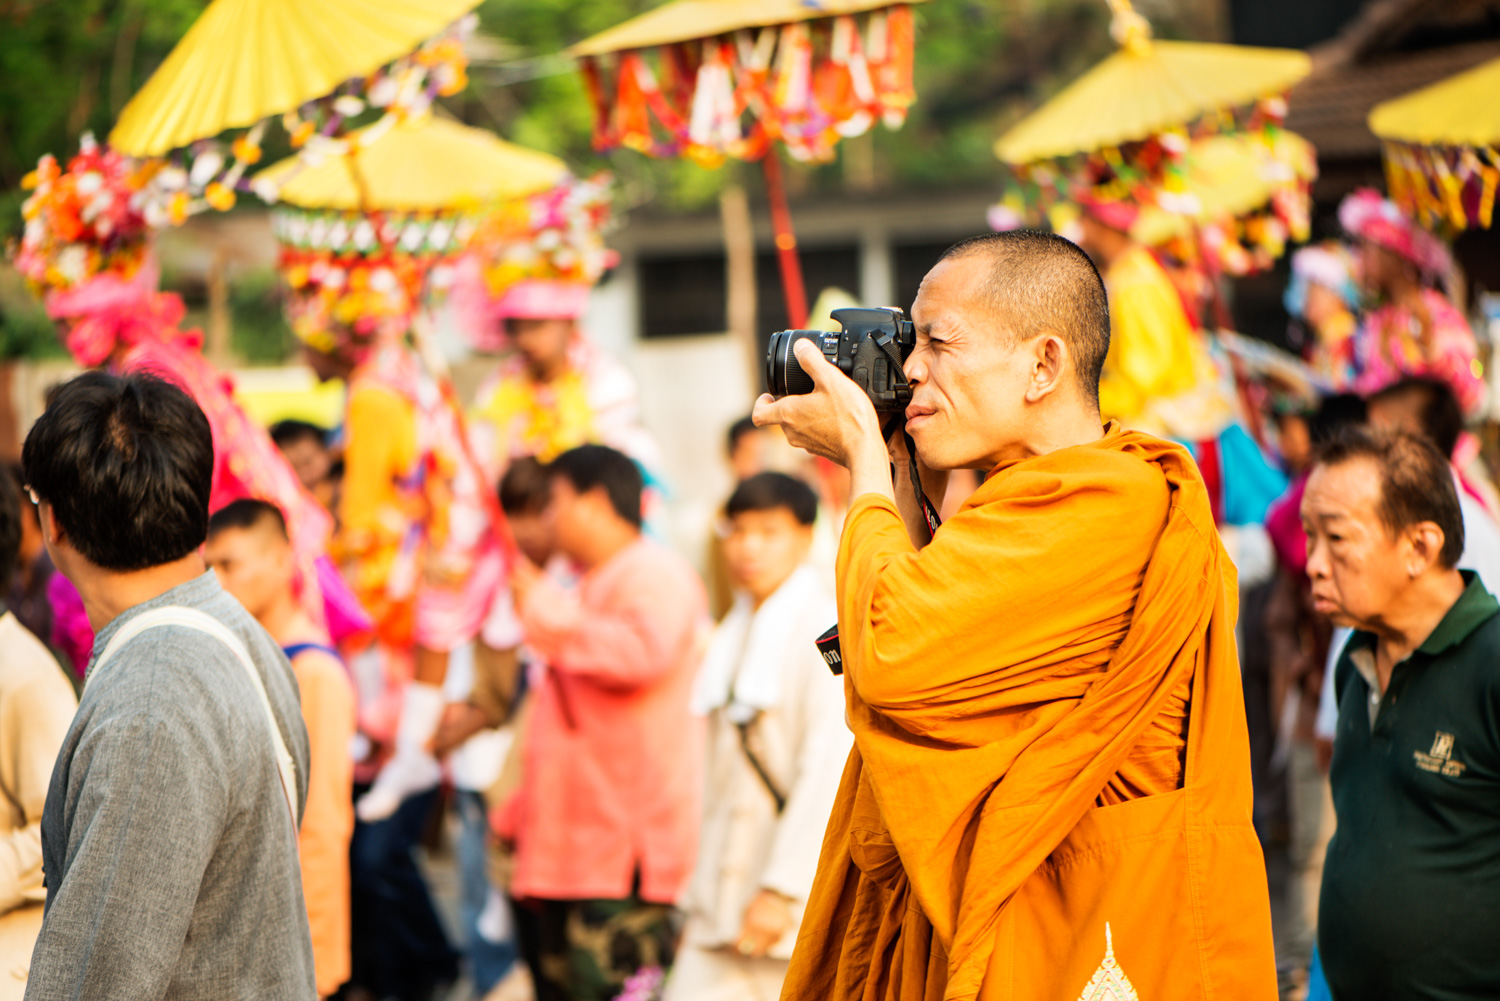 Monk photographing with intent outdoors at a parade